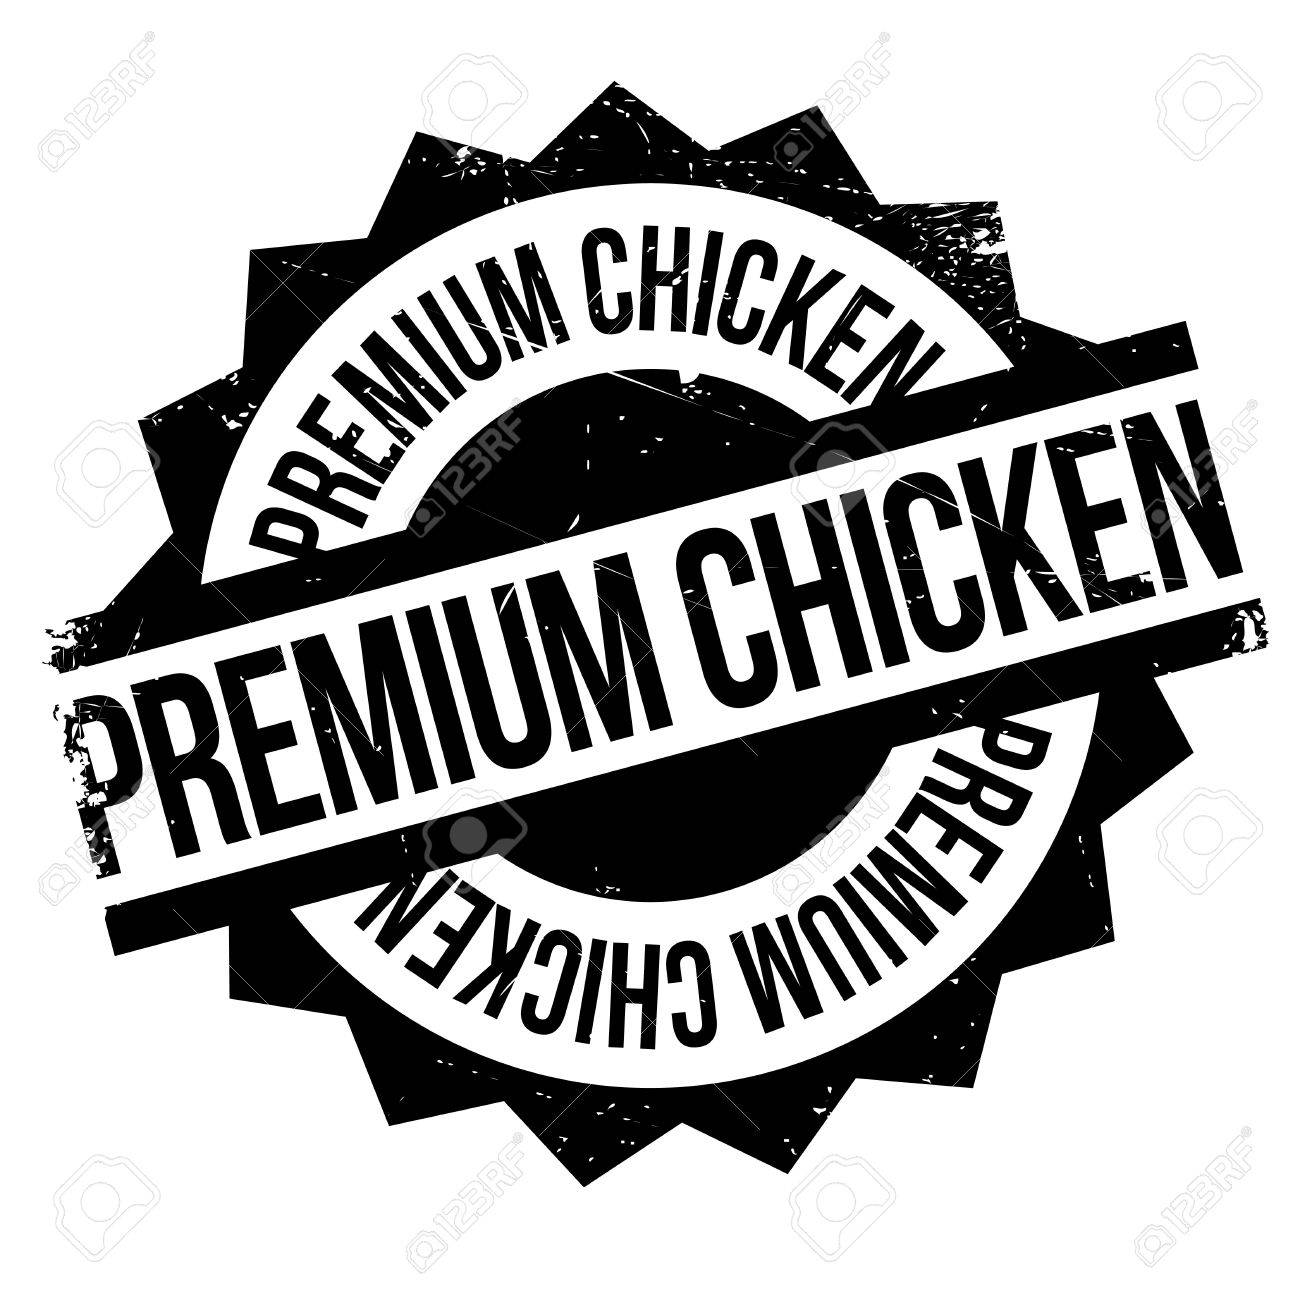 Premium Chicken Rubber Stamp Grunge Design With Dust Scratches Effects Can Be Easily Removed